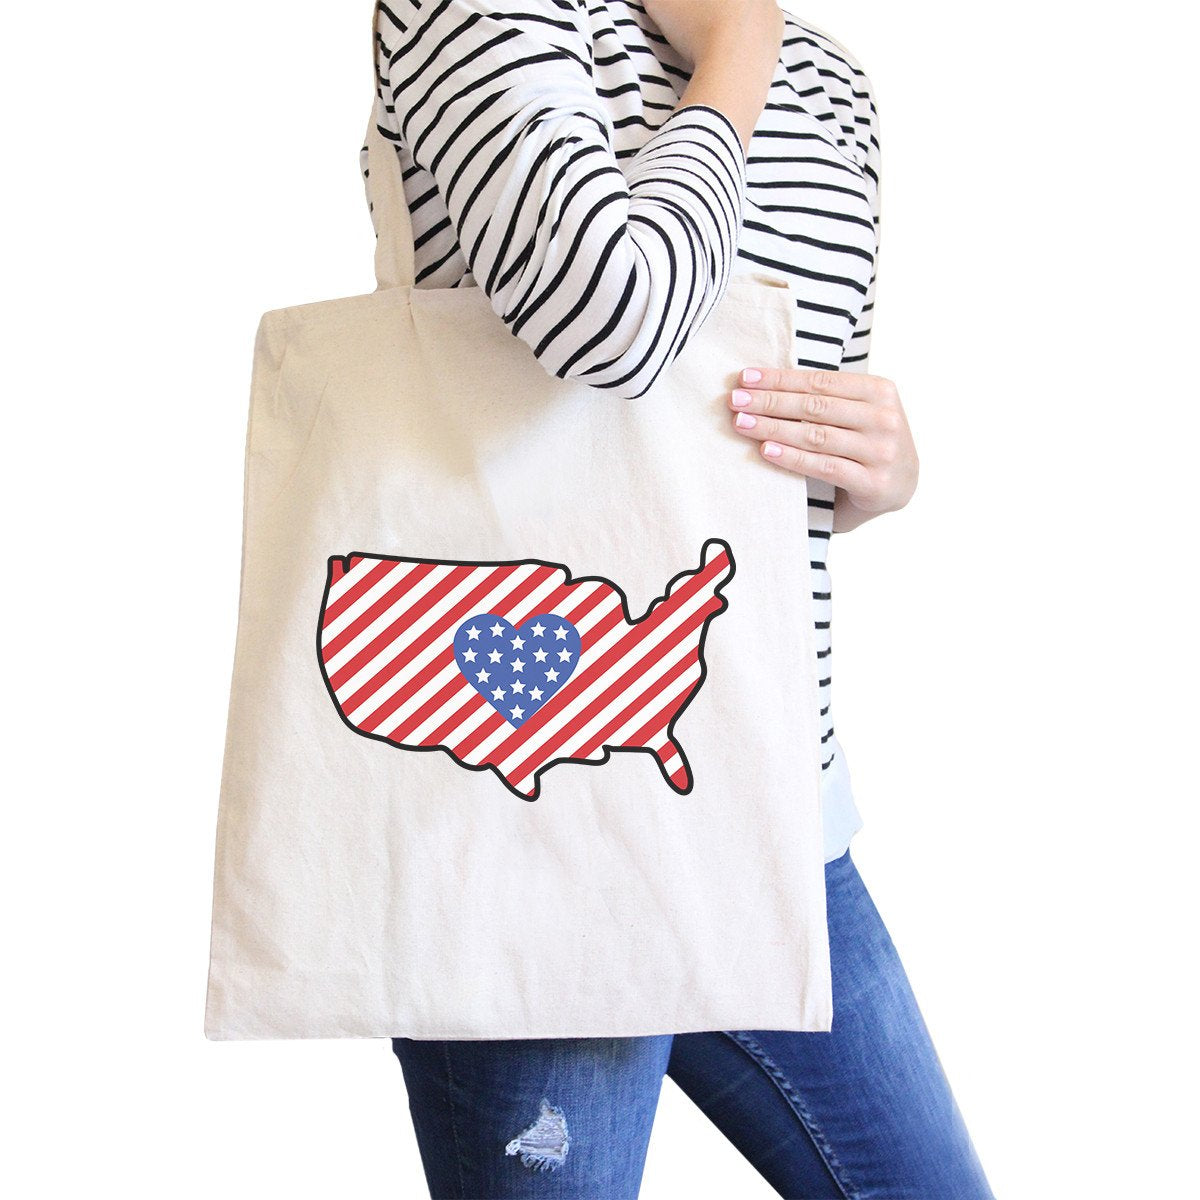 USA Map American Flag Cotton Shoulder Bag Cute Heart Design Tote